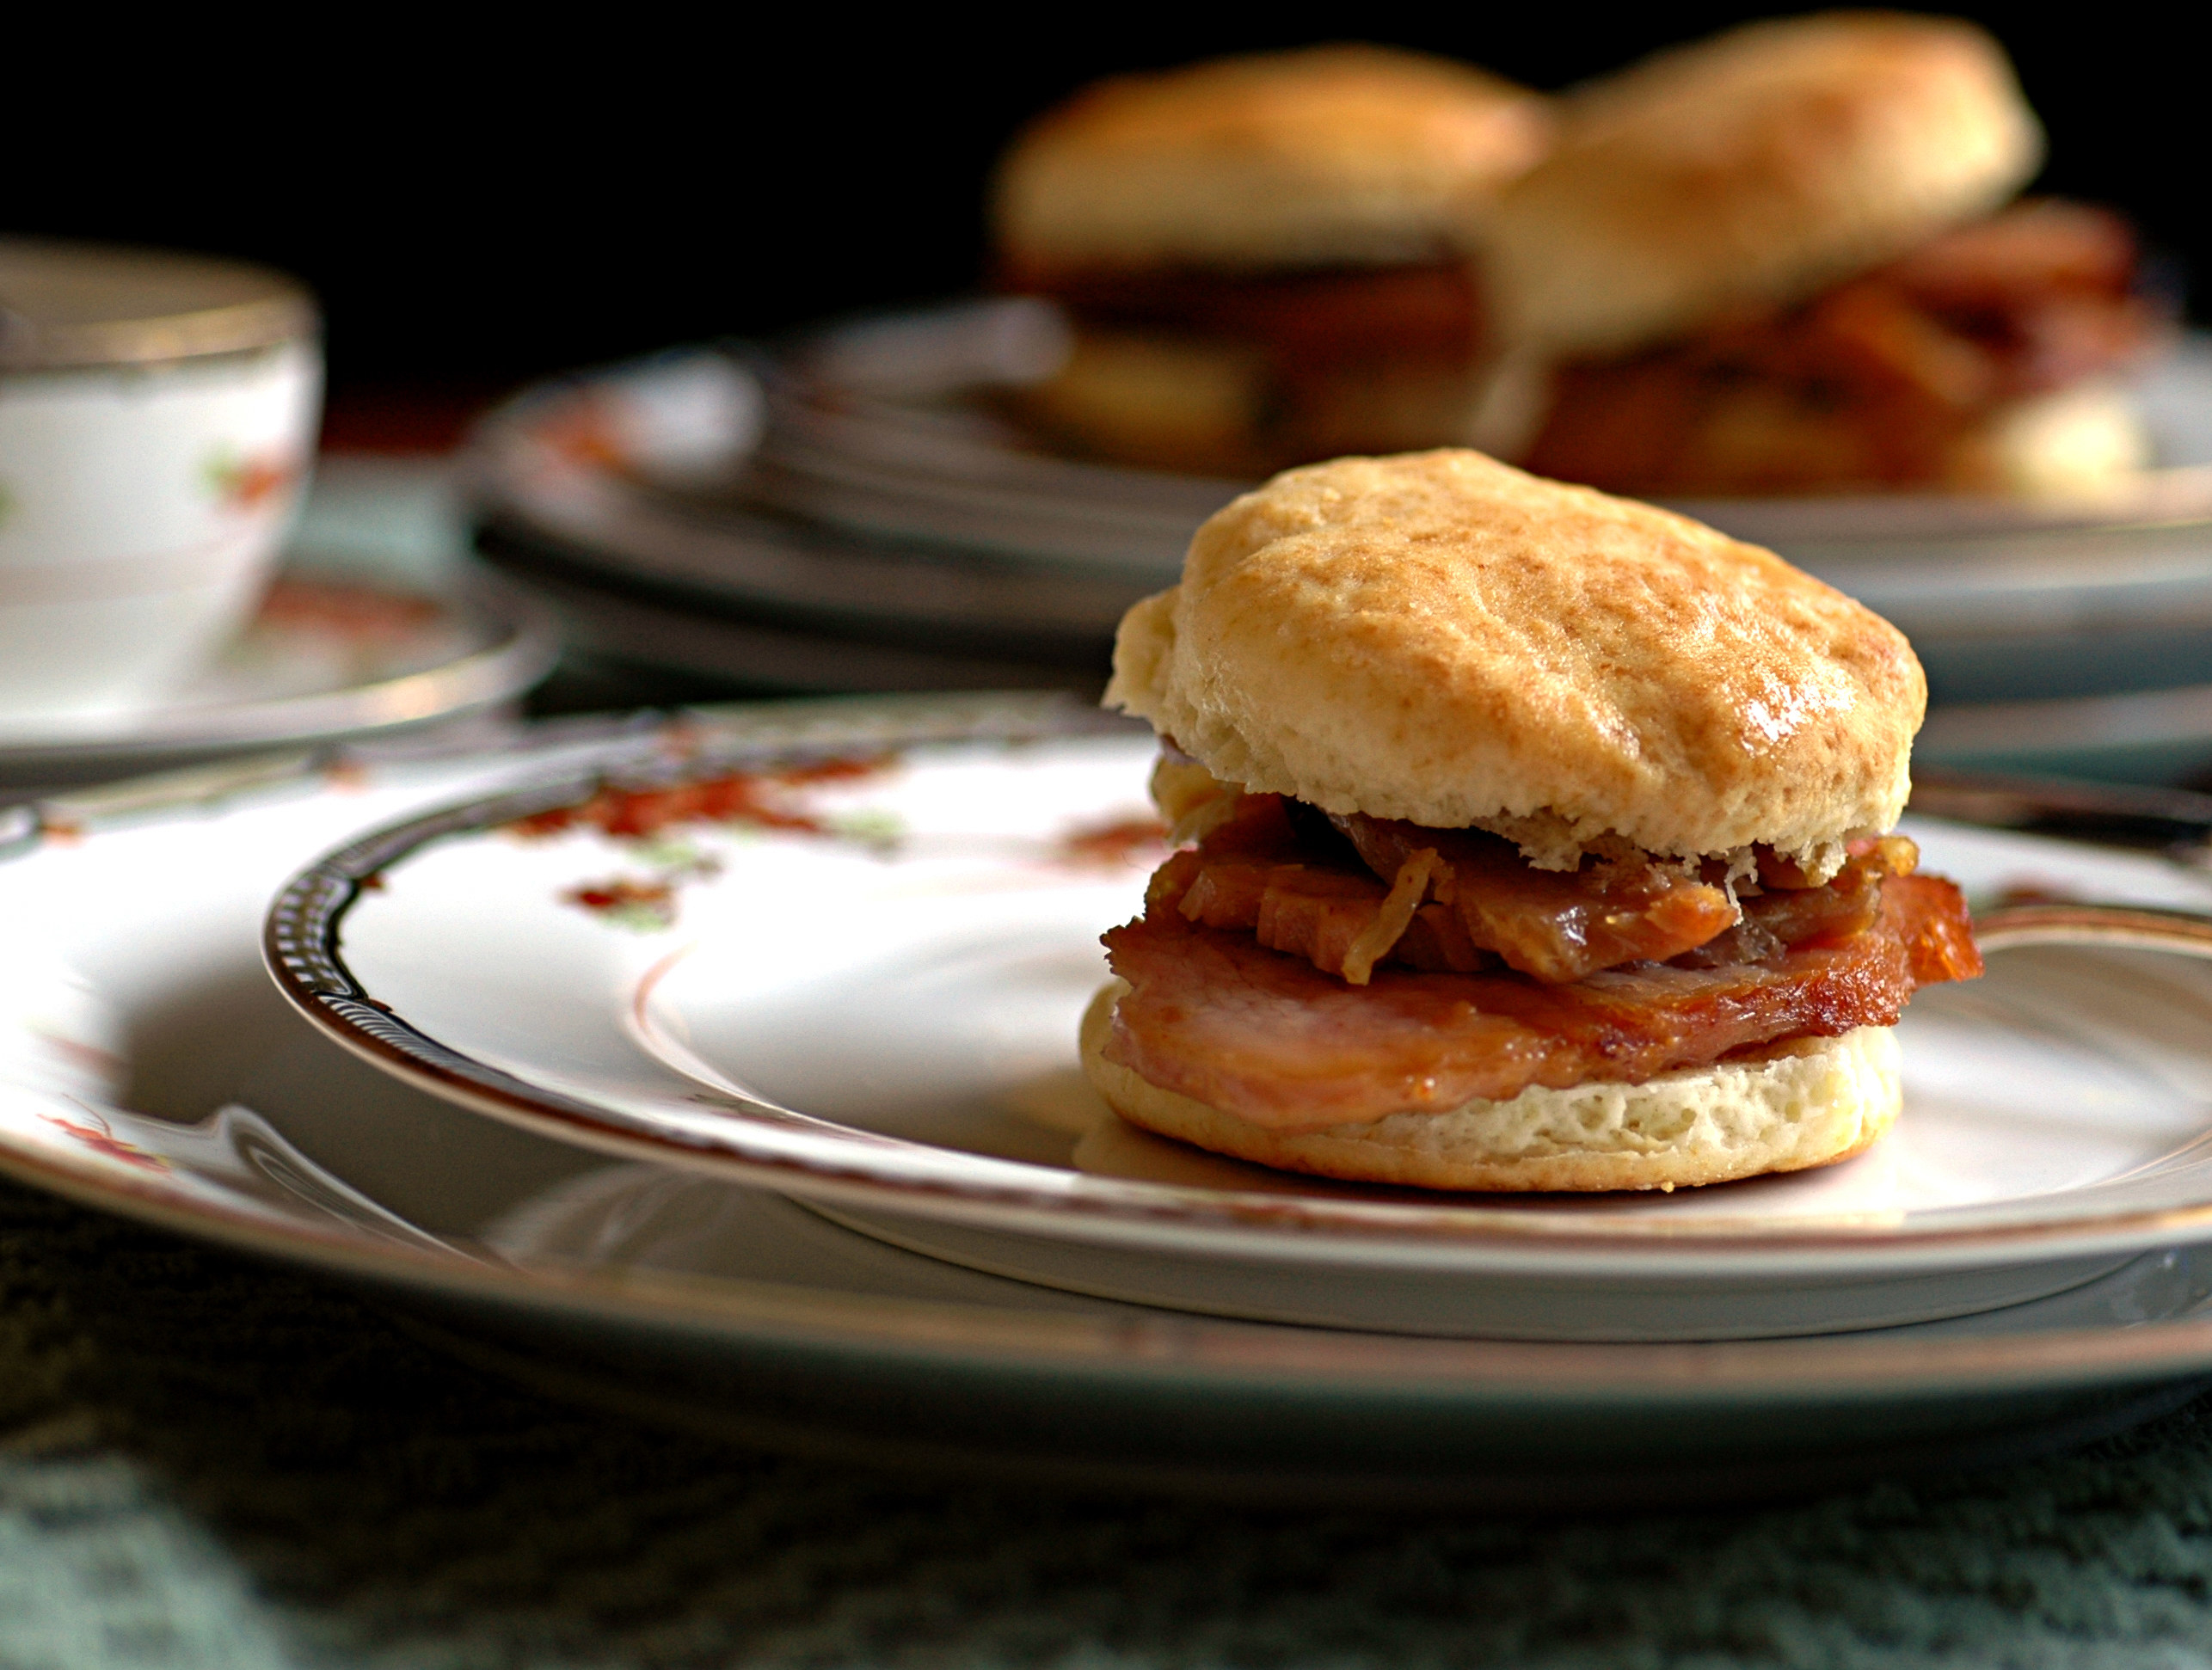 Country ham on a biscuit.